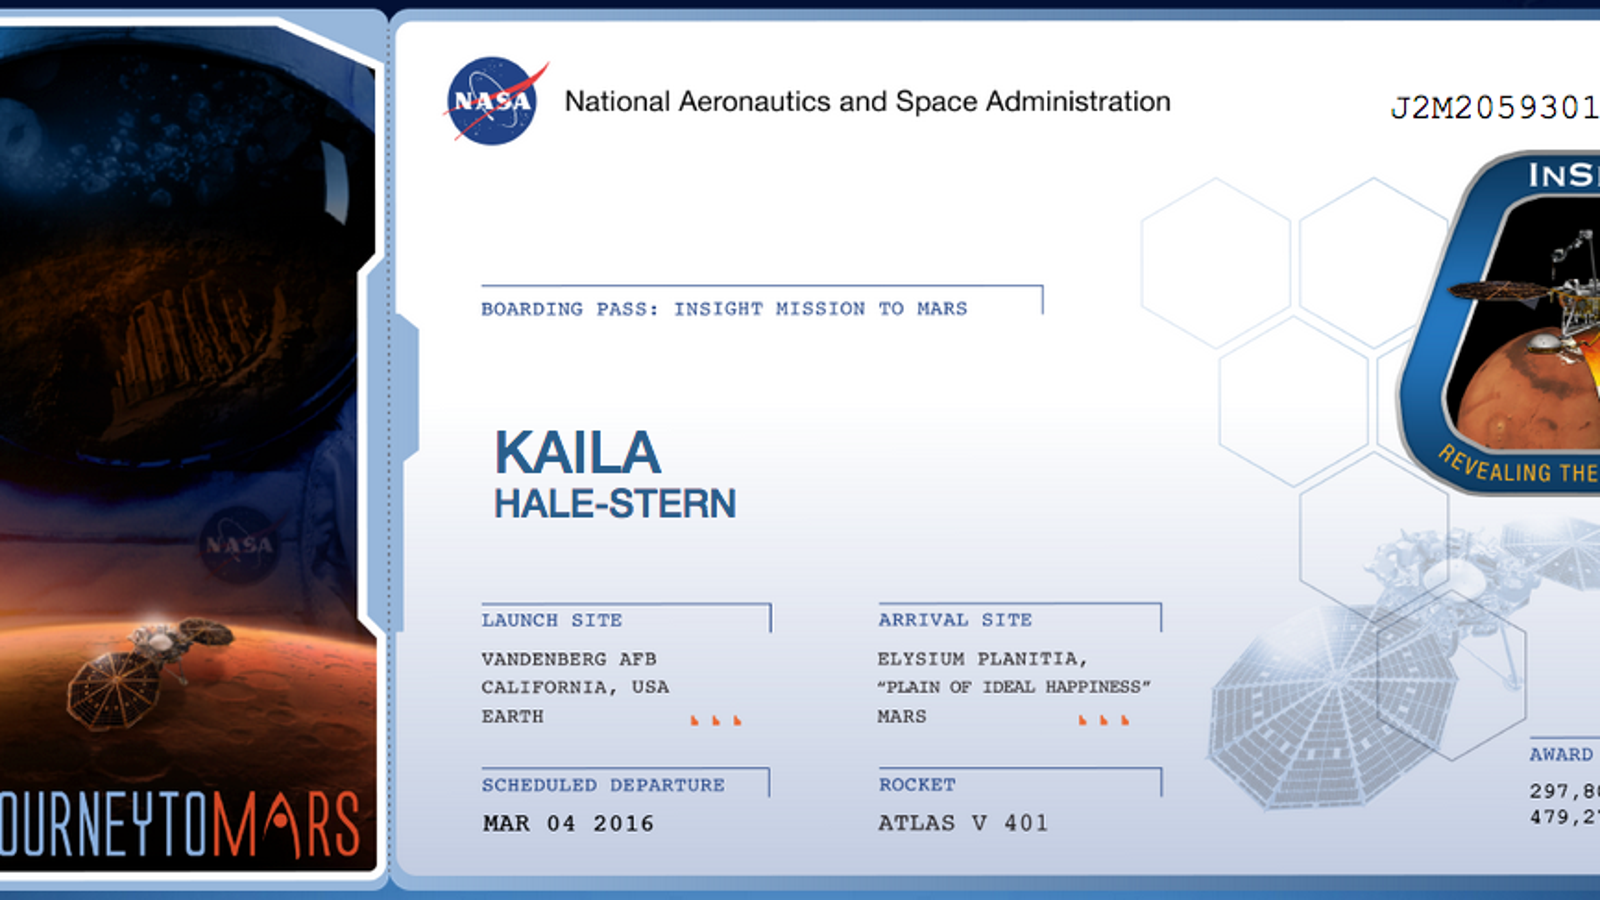 Sign Up To Send Your Name To Mars With NASA